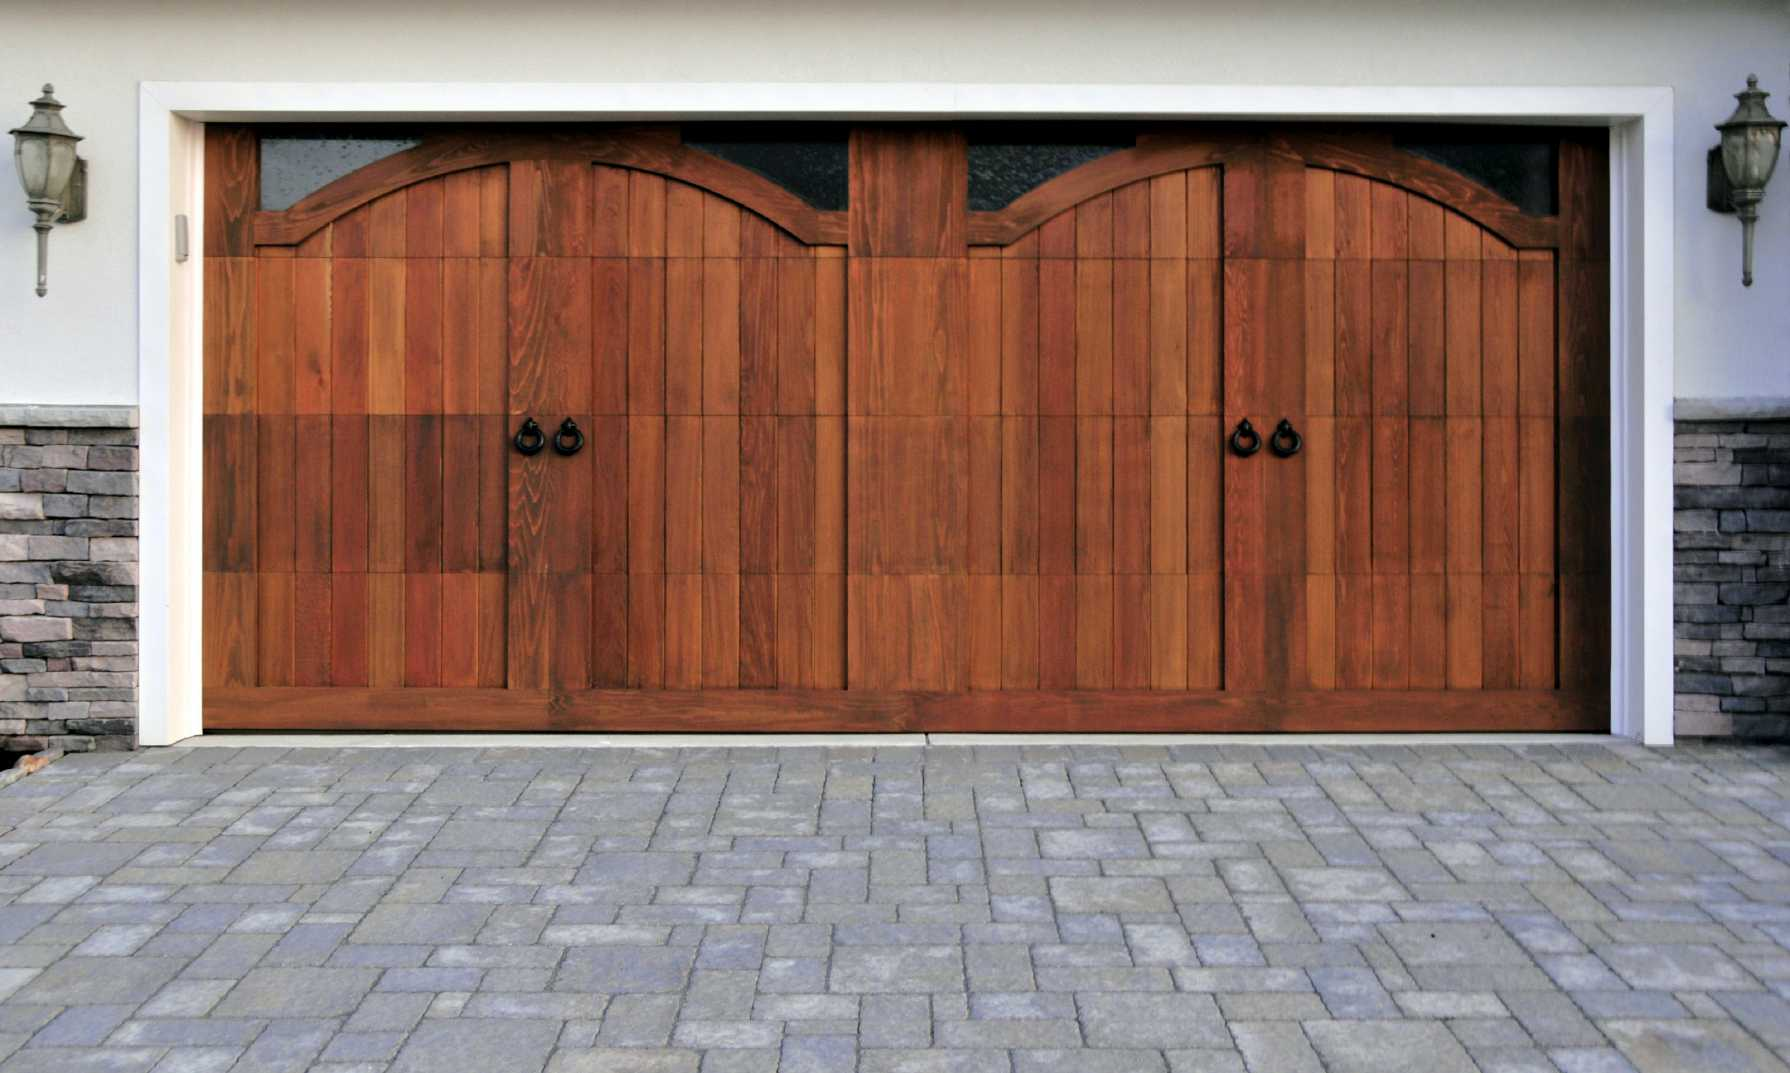 New doors for Garage door opens on its own